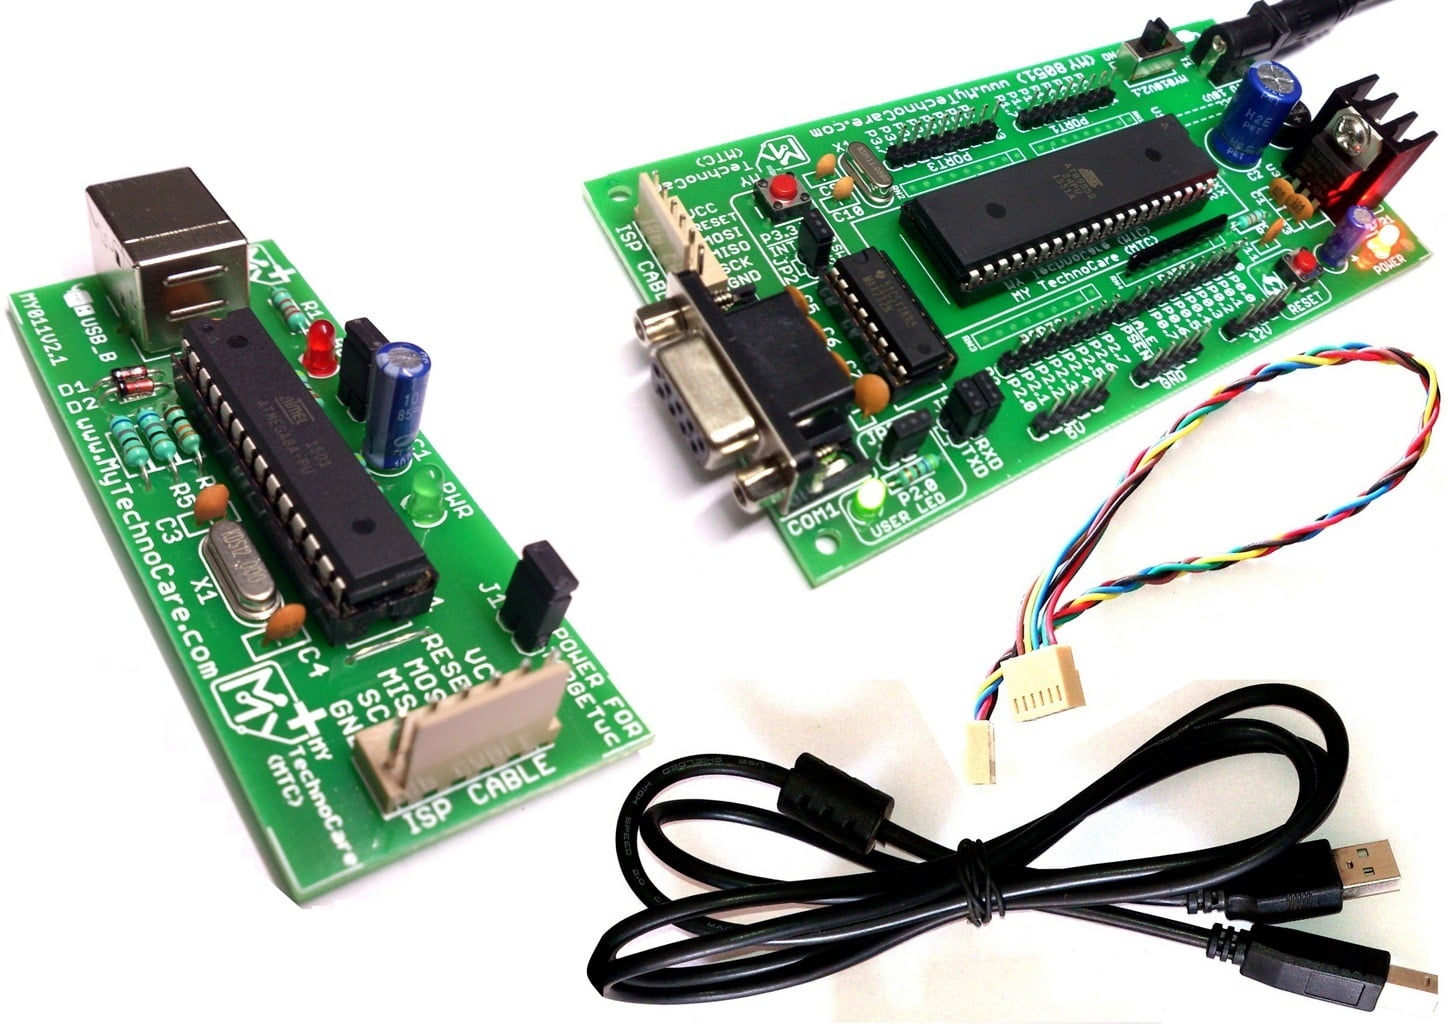 8051 Development Board With Usb Programmermax232atmel At89s52 Ic Microcontroller Project Kit Max 232 Circuit Schematic Working Gsm Modem Pc Serial Port Developement Max232 Asp Programmer My Technocare